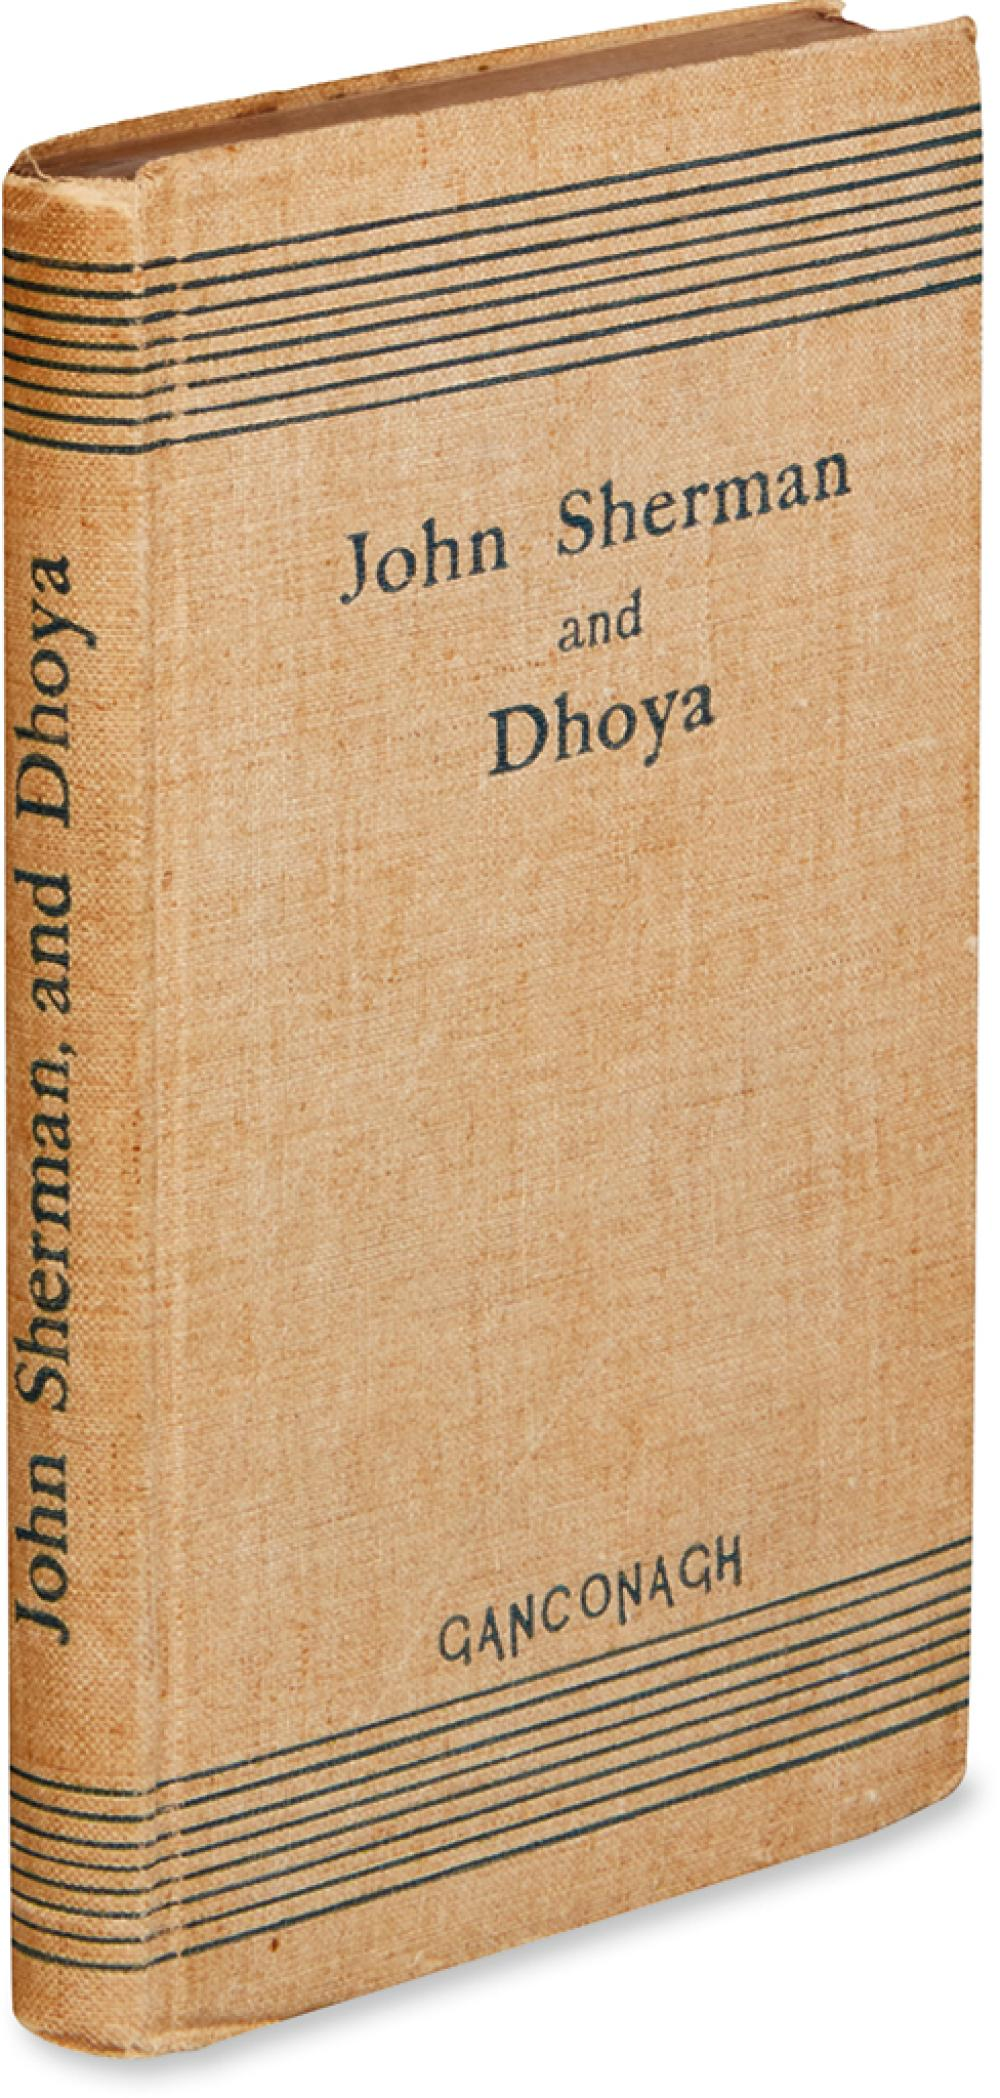 [YEATS, WILLIAM BUTLER.] John Sherman and Dhoya. By Ganconagh.